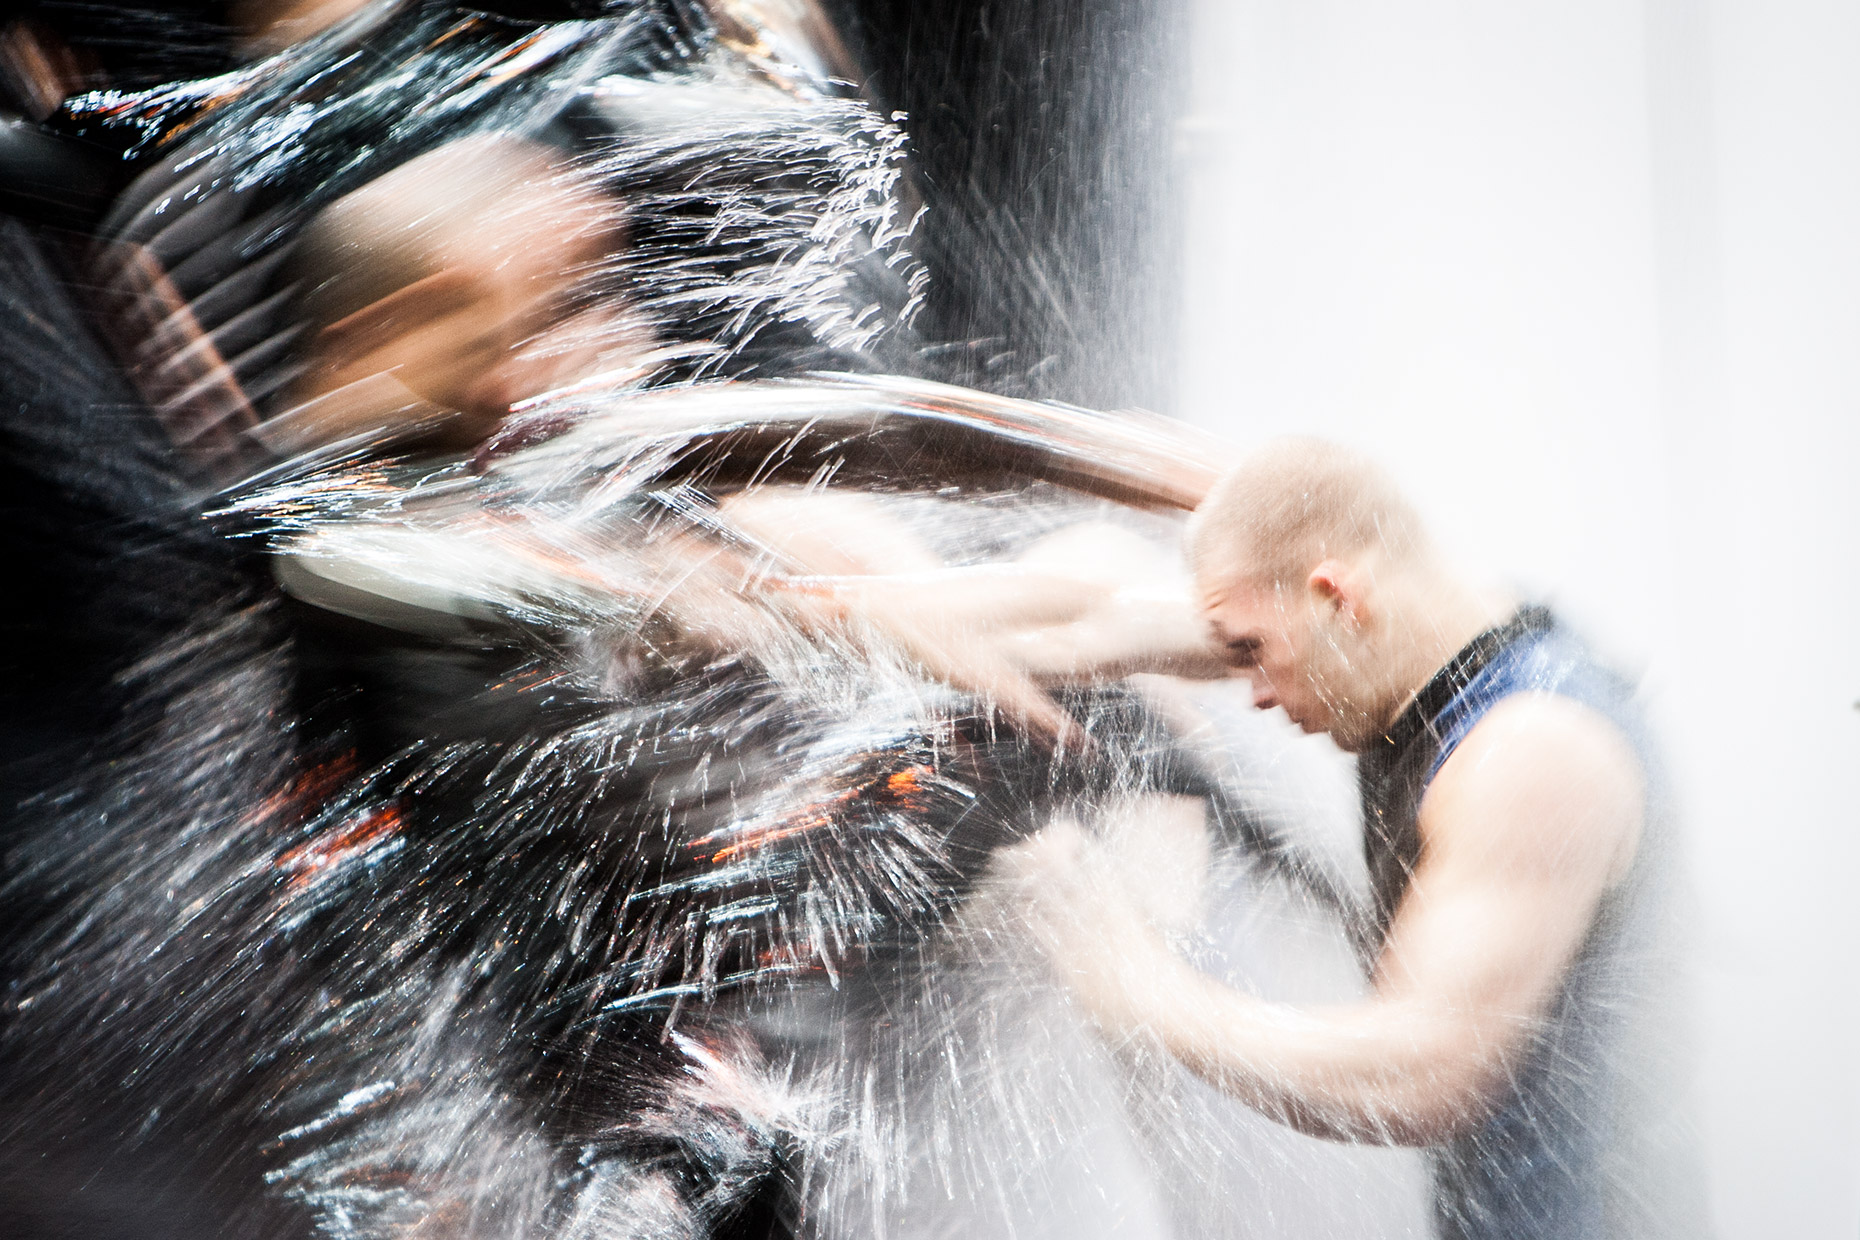 punching water in a high speed. Le RÊVE creation shot